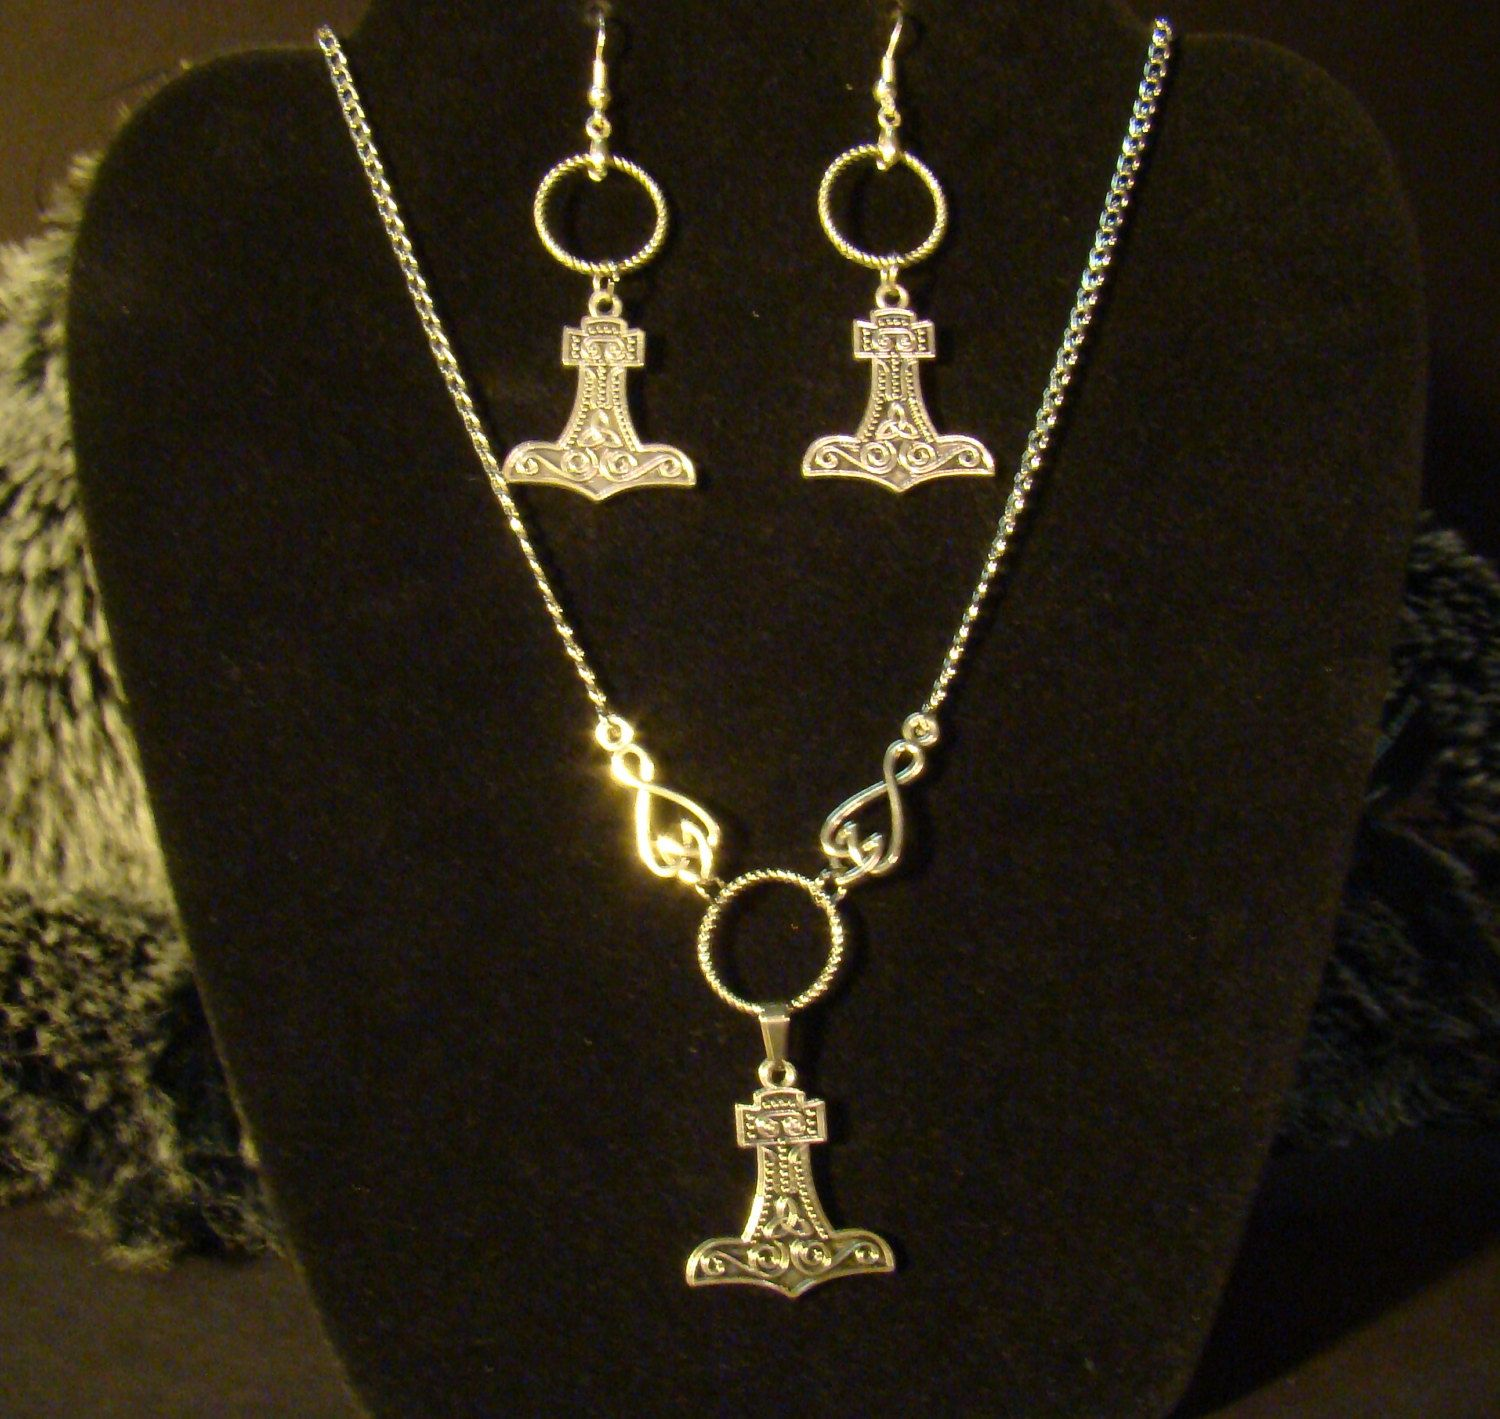 Women's Thor's Hammer Silver Earring and Necklace SET... Valkyrie Viking strength Norse gods and goddesses Pagan Asatru Freya frigg Sif by jewelryofasgard on Etsy